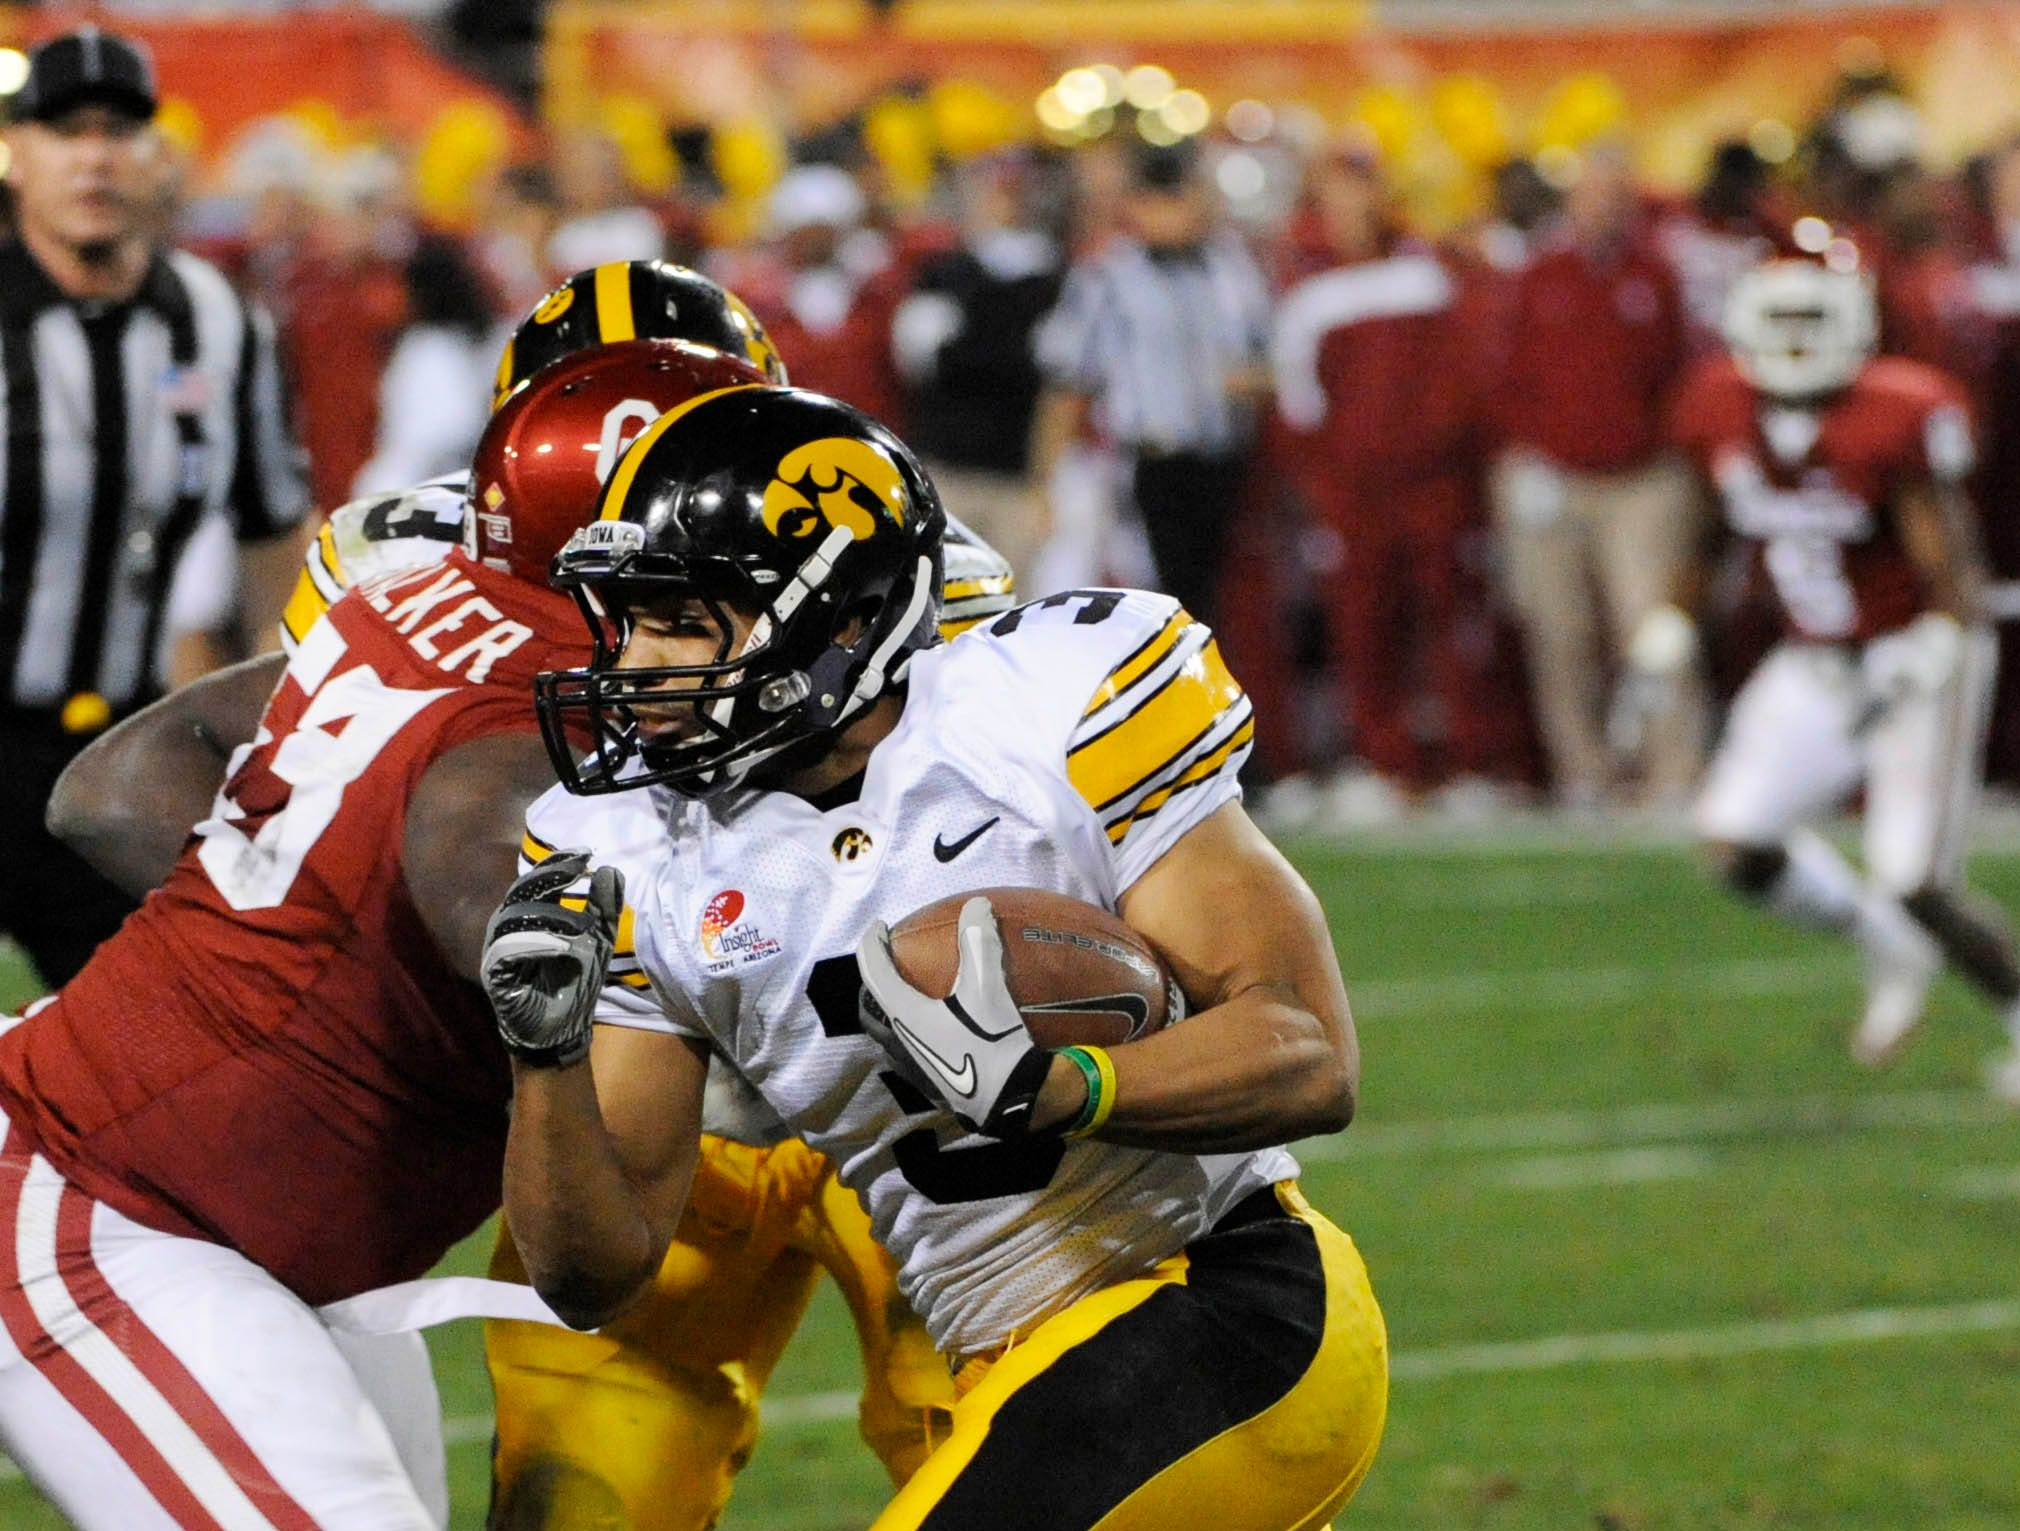 Dec 30, 2011; Tempe, AZ, USA; Iowa Hawkeyes running back Jason White (3) runs with the ball against Oklahoma Sooners during the first half of the 2011 Insight Bowl at the Sun Devil Stadium. Mandatory Credit: Richard Mackson-USA TODAY Sports